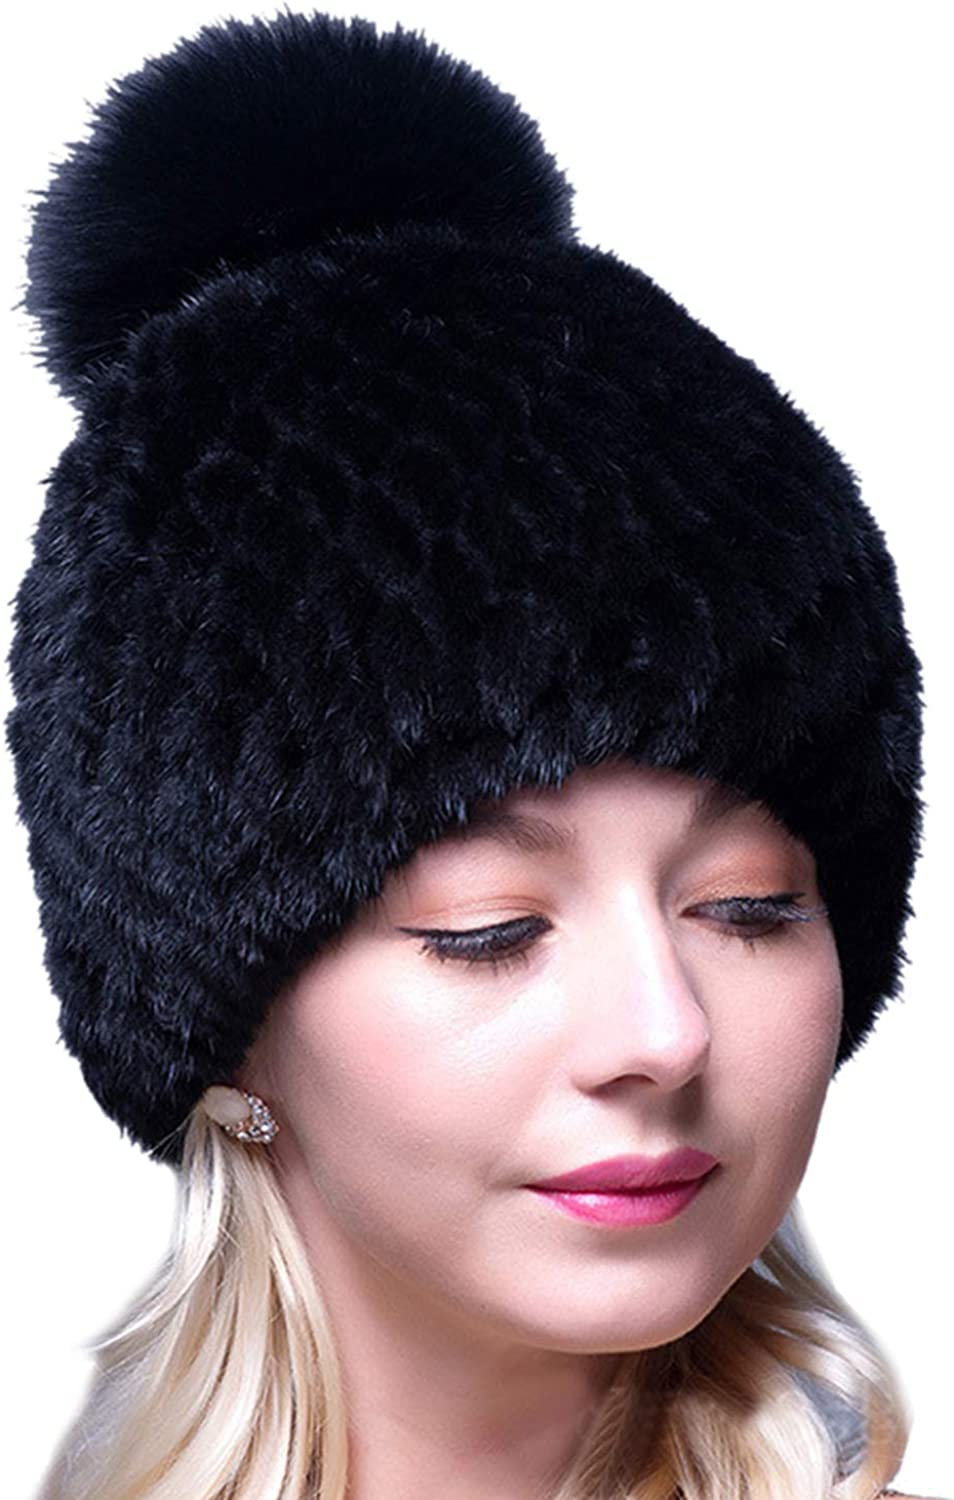 LITHER Thick Winter Fashionable Genuine Knit Mink Hat Fox with Outlet ☆ Free Shipping P Pom Fur